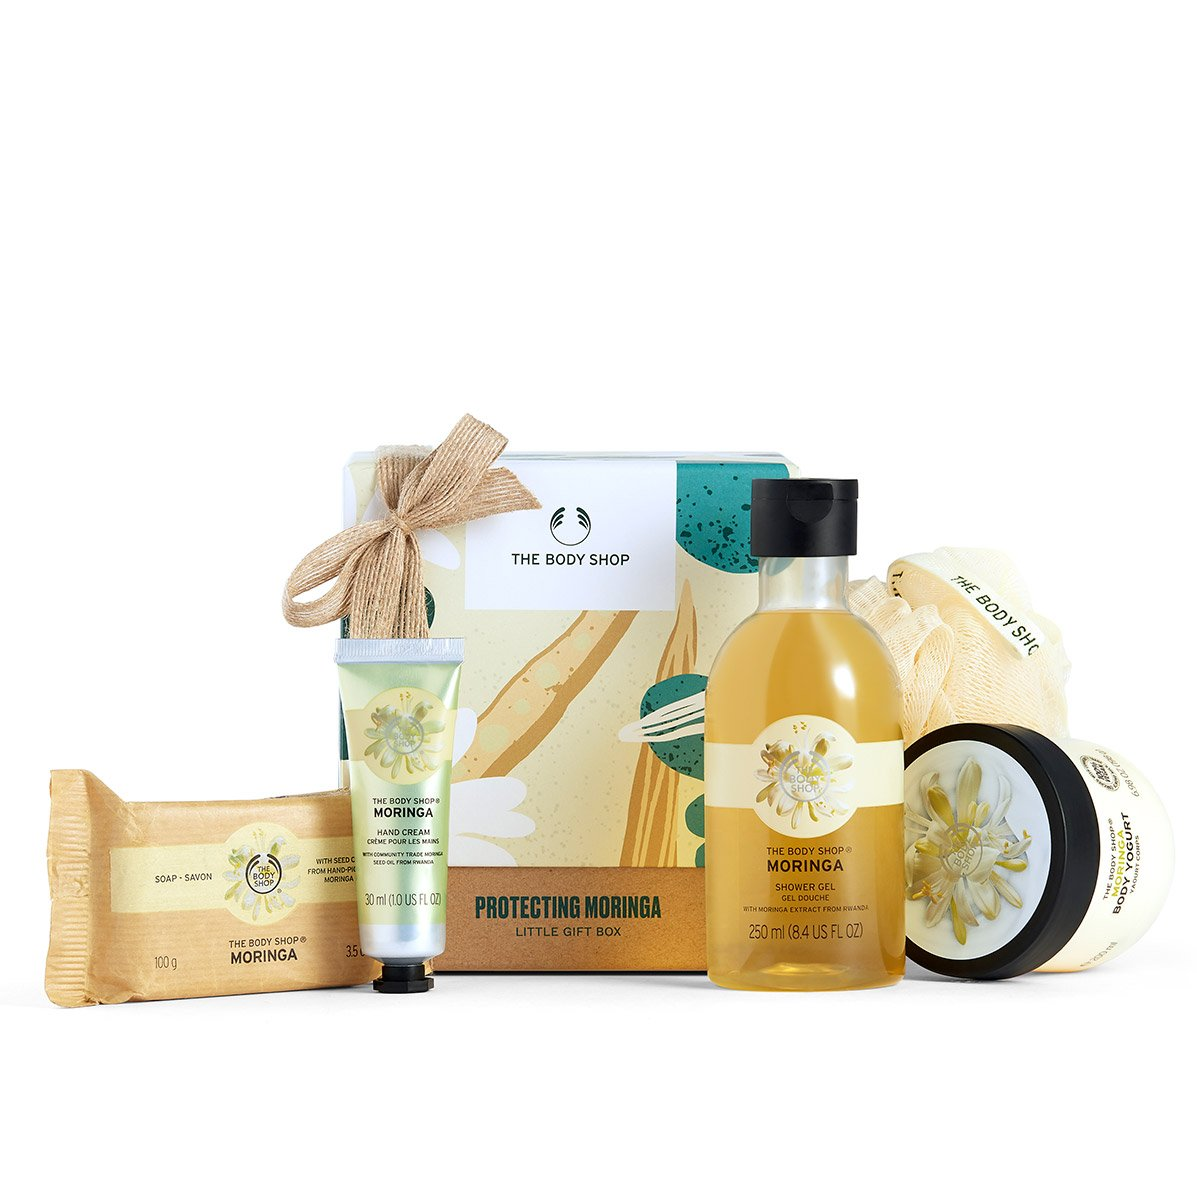 Protecting Moringa Little Gift Box